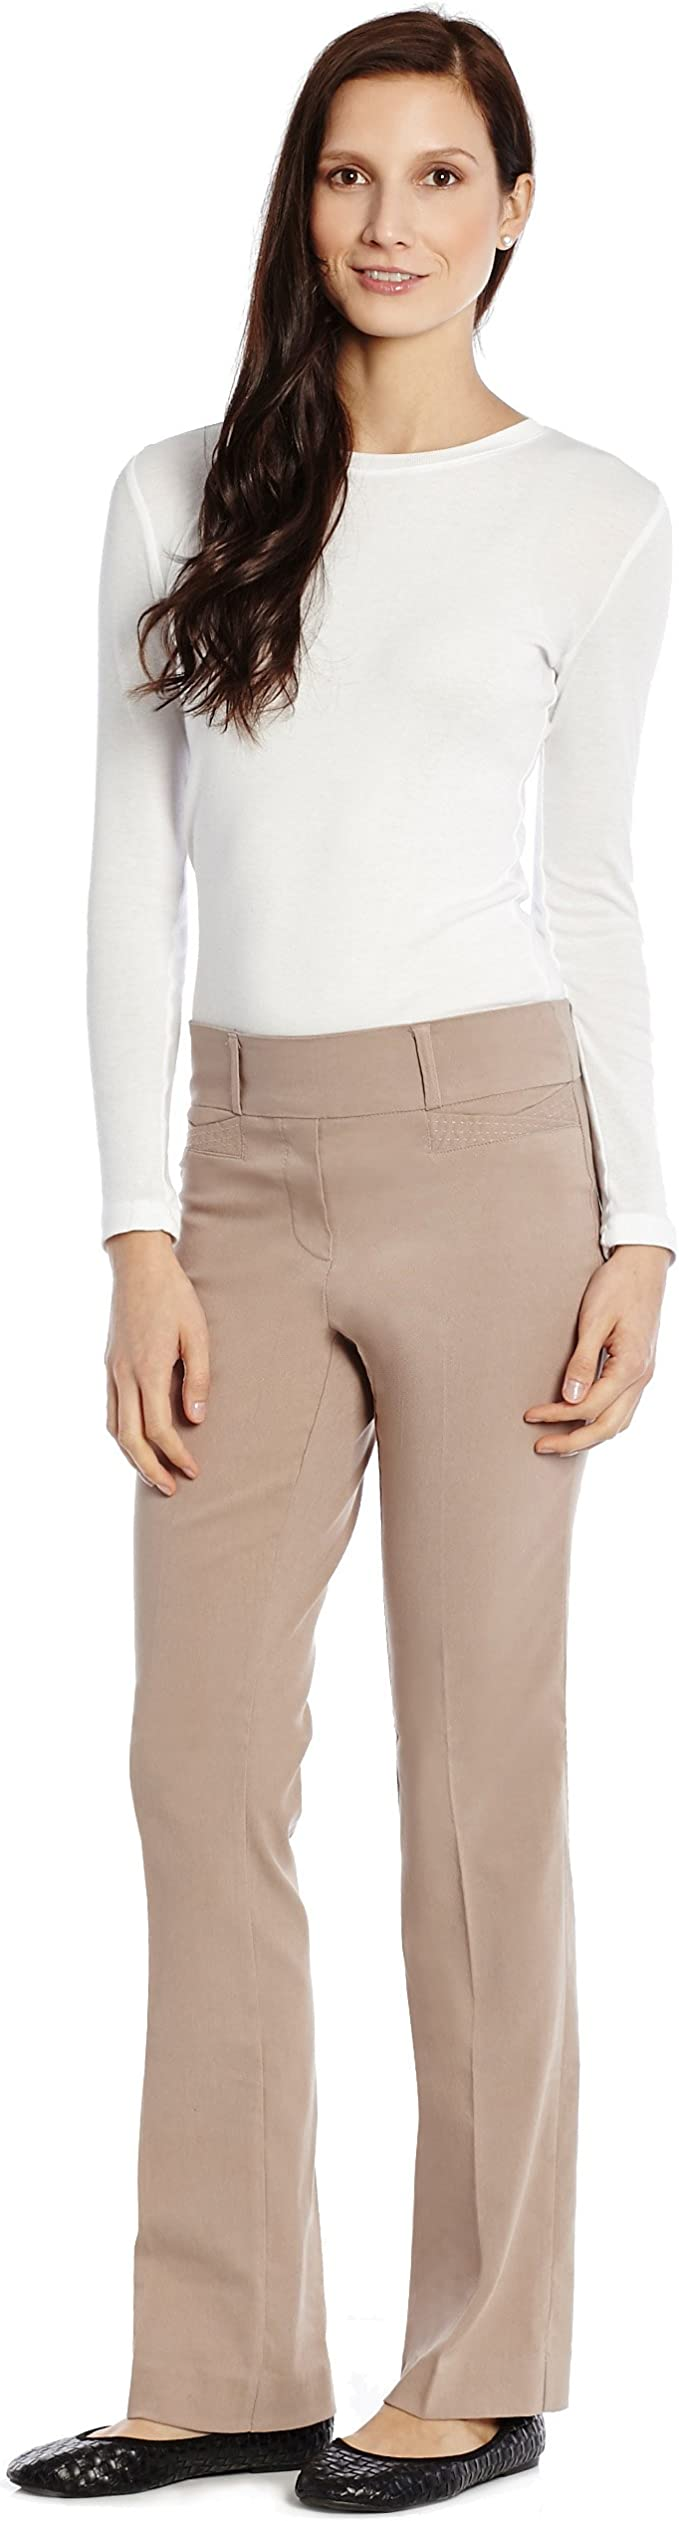 4-18 Leveret Women/'s Dk Grey Stretchable Slight Boot Cut Comfort Pant Pull On